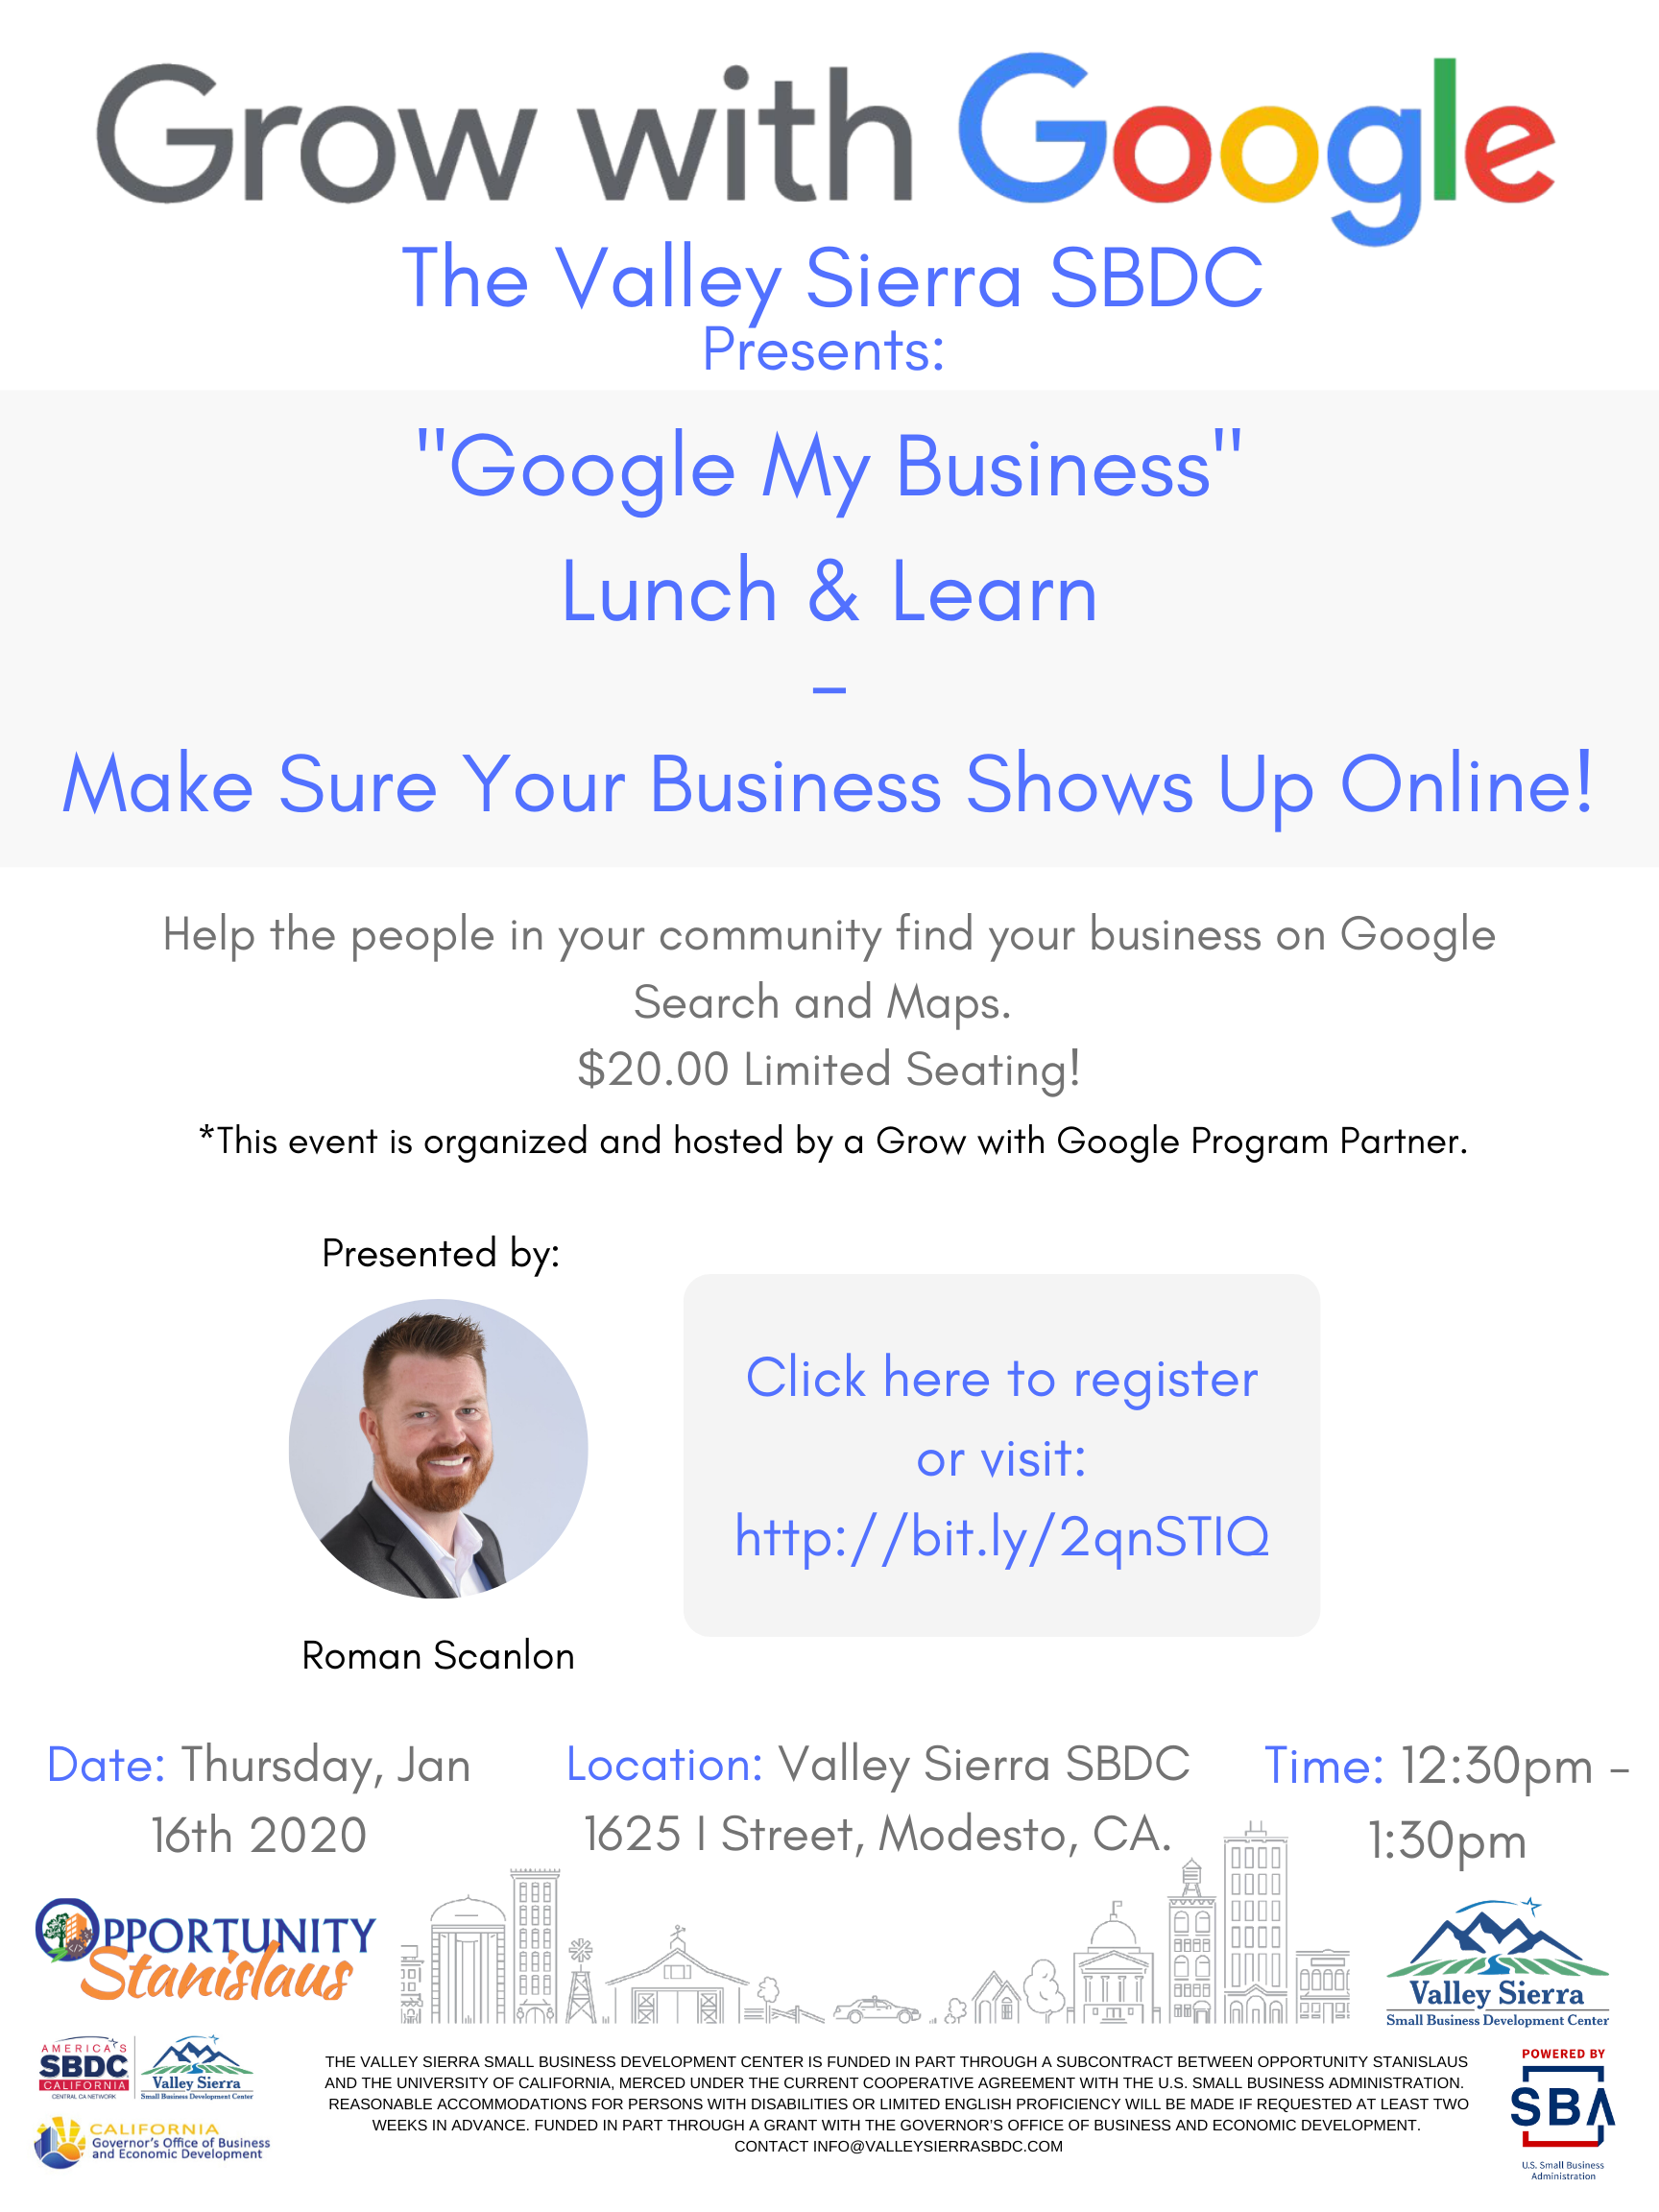 Event Flyer, Google My Business, $20.00 Lunch & Learn Thursday, January 16th 2020 from 12:30pm - 1:30pm. Register Today!